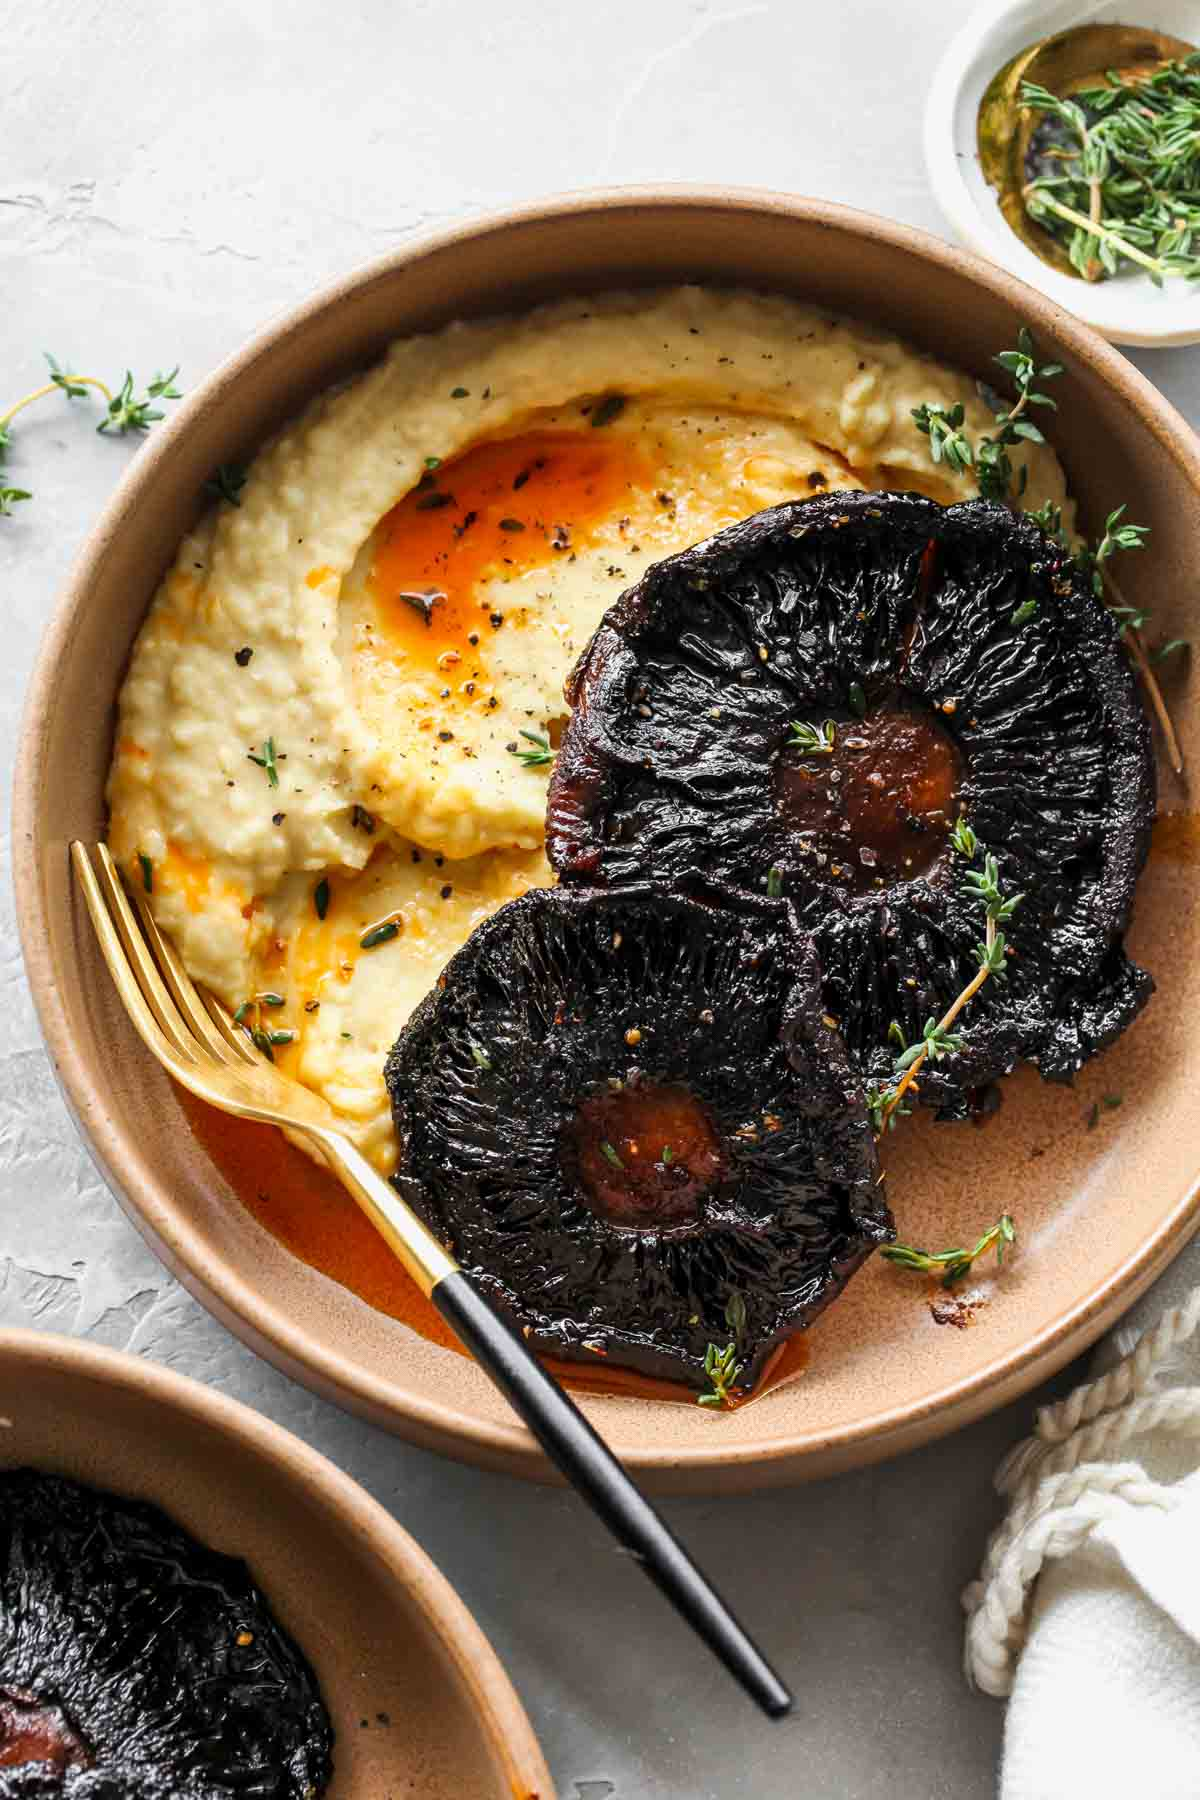 Butter bean mash in a tan bowl topped with two portobello mushrooms